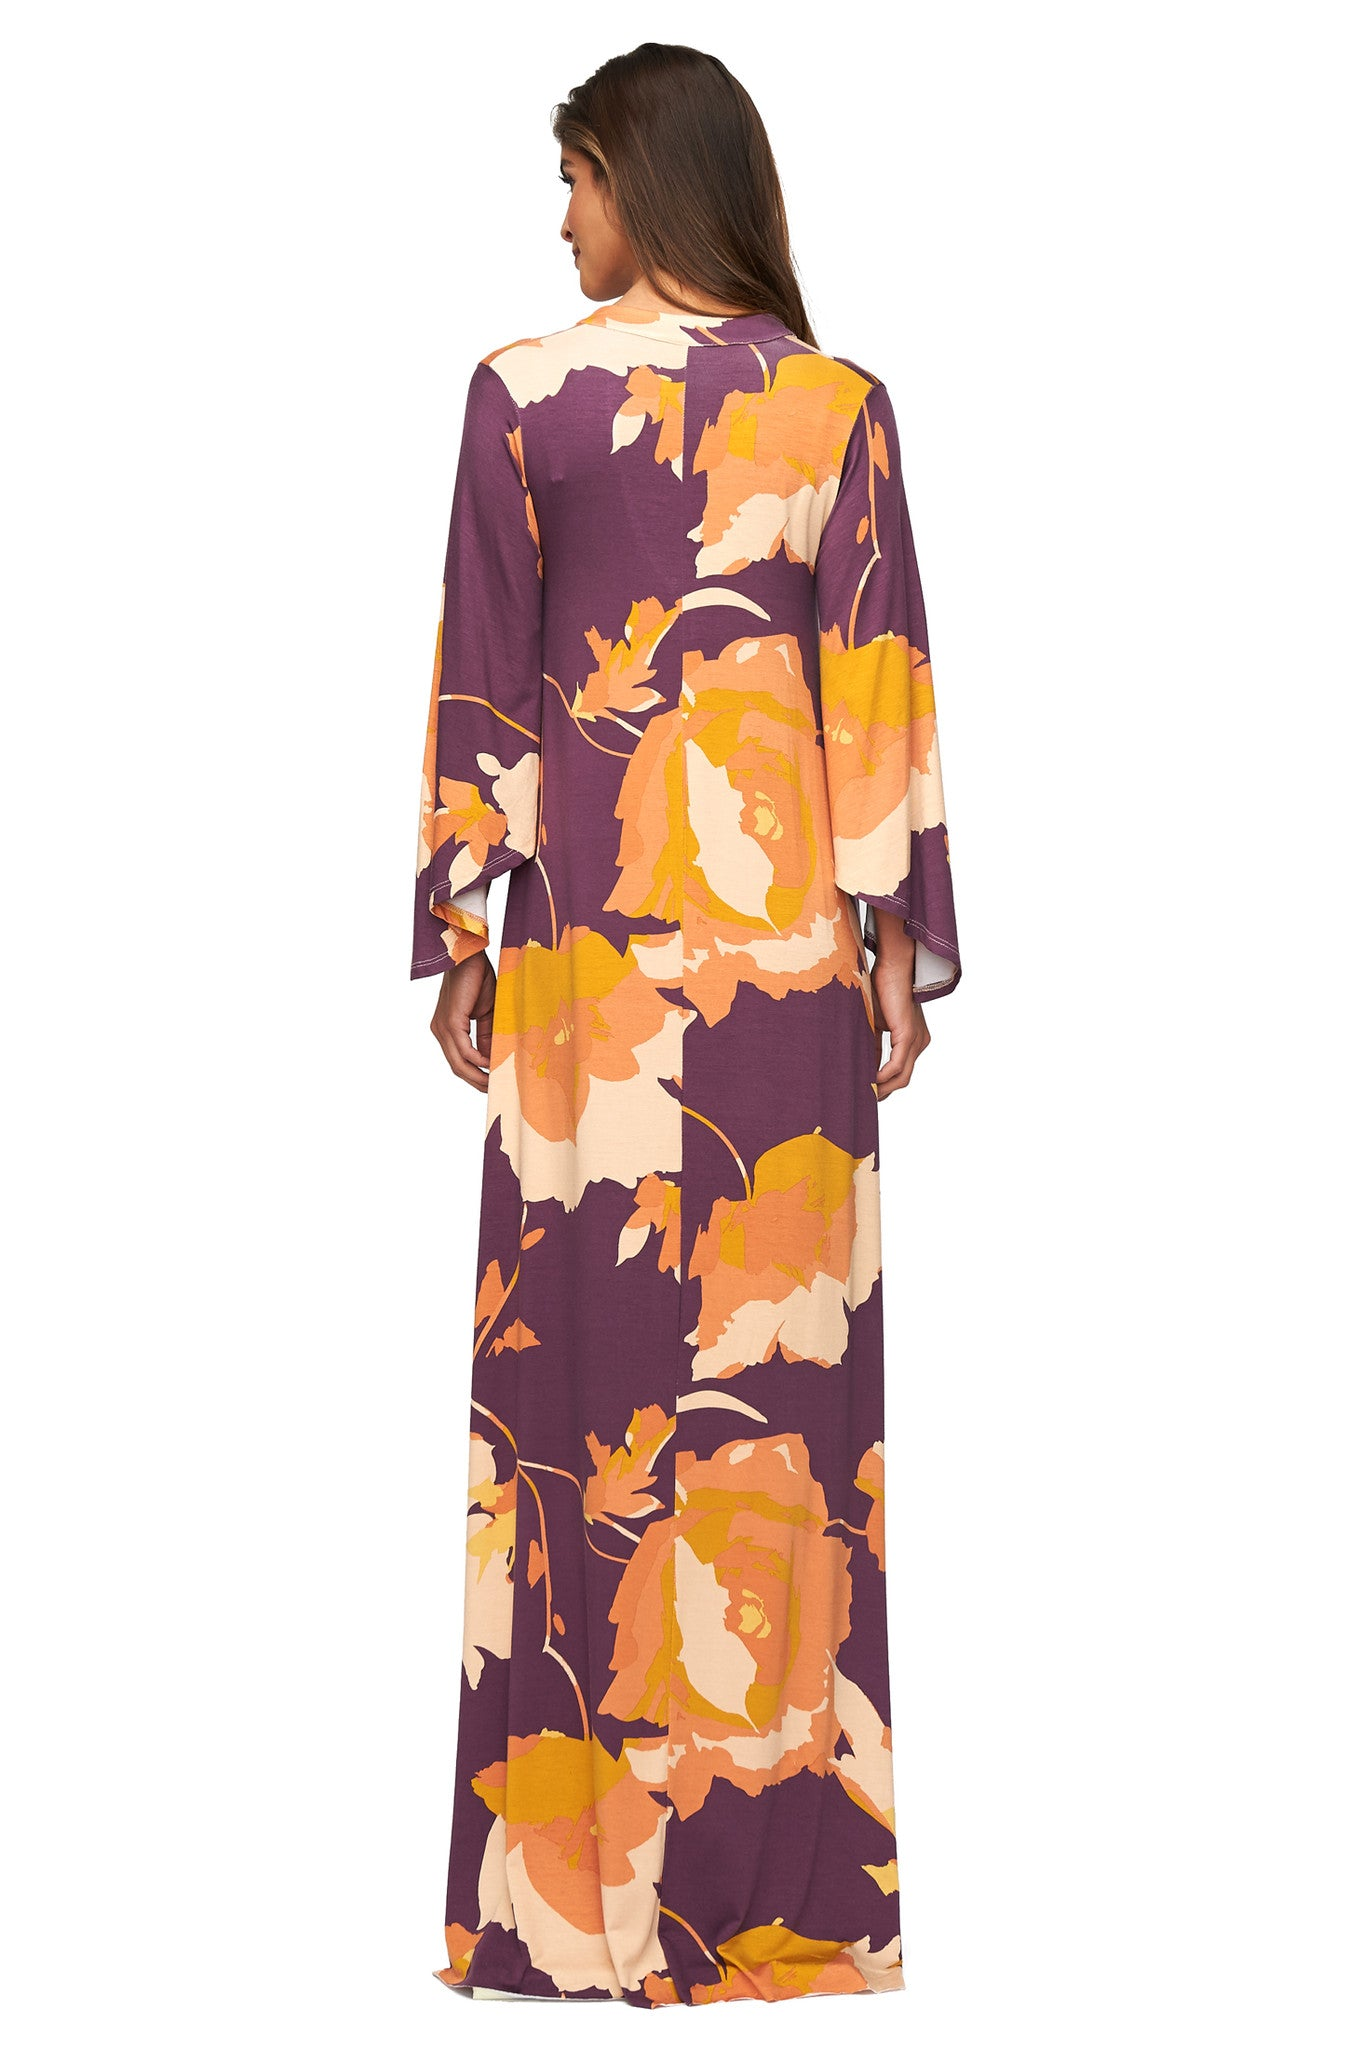 Rosaleen Dress Print - Desert Flower